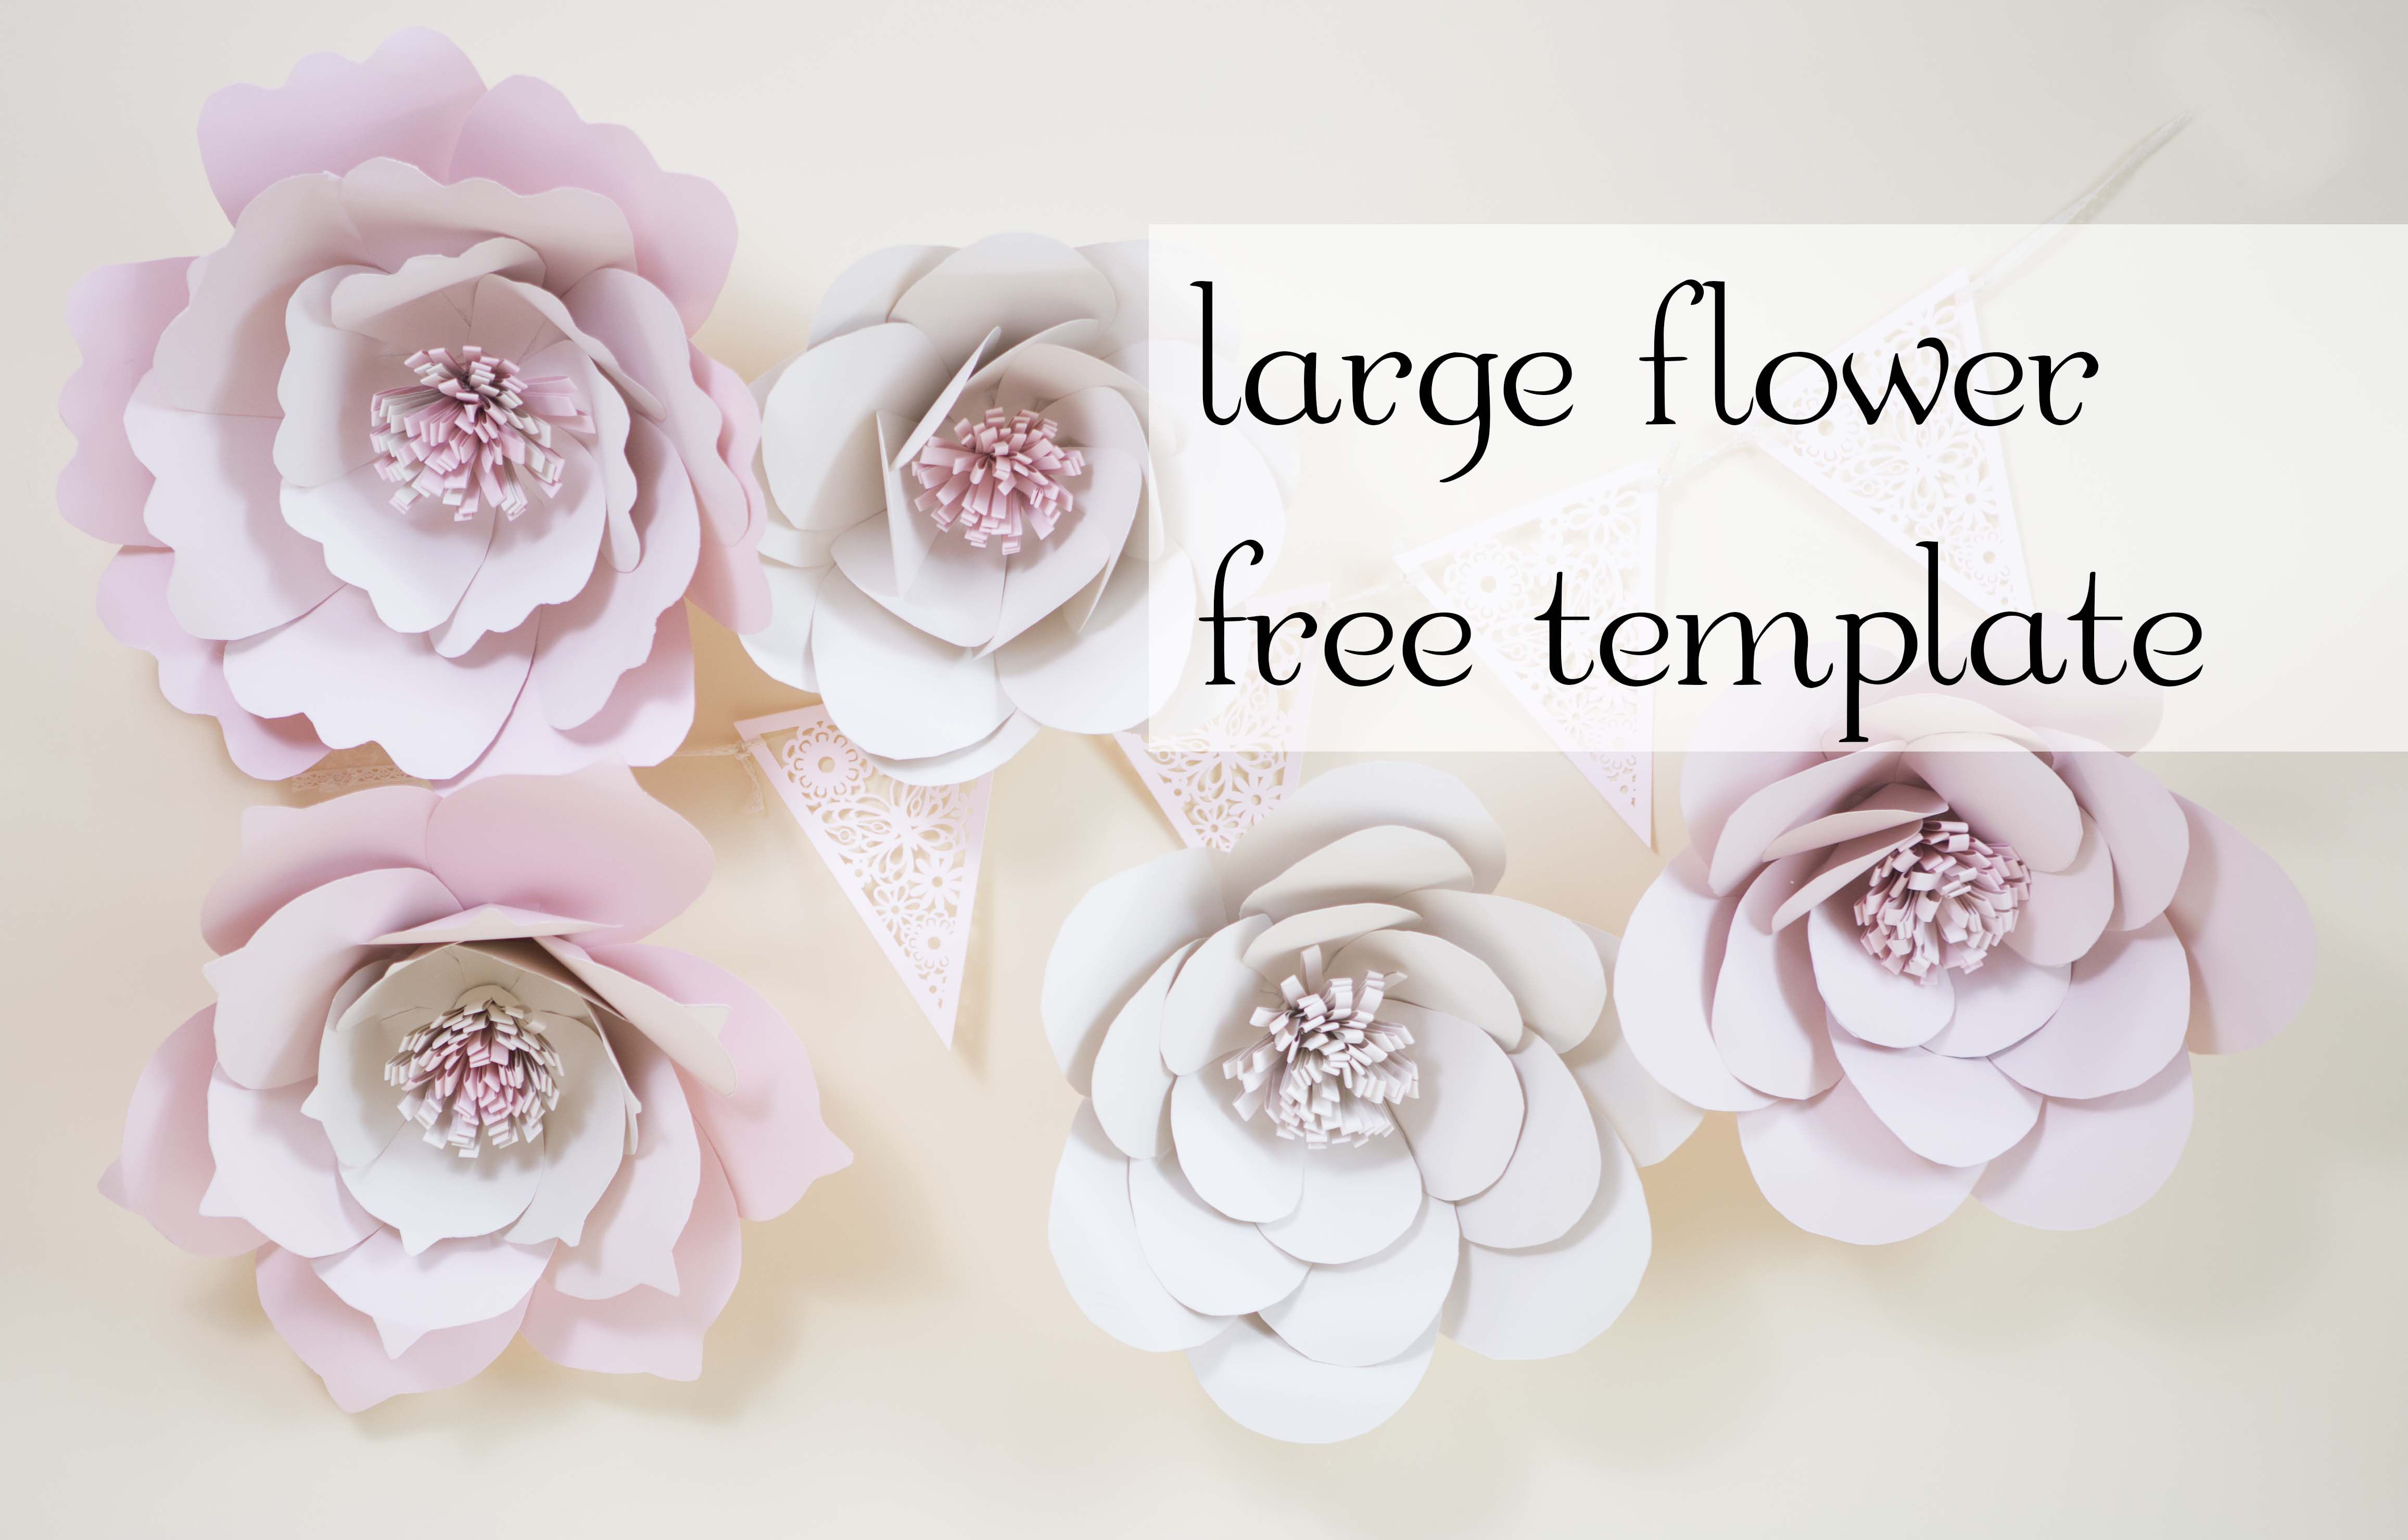 Giant Paper Flowers Free Template Charmed By Ashley